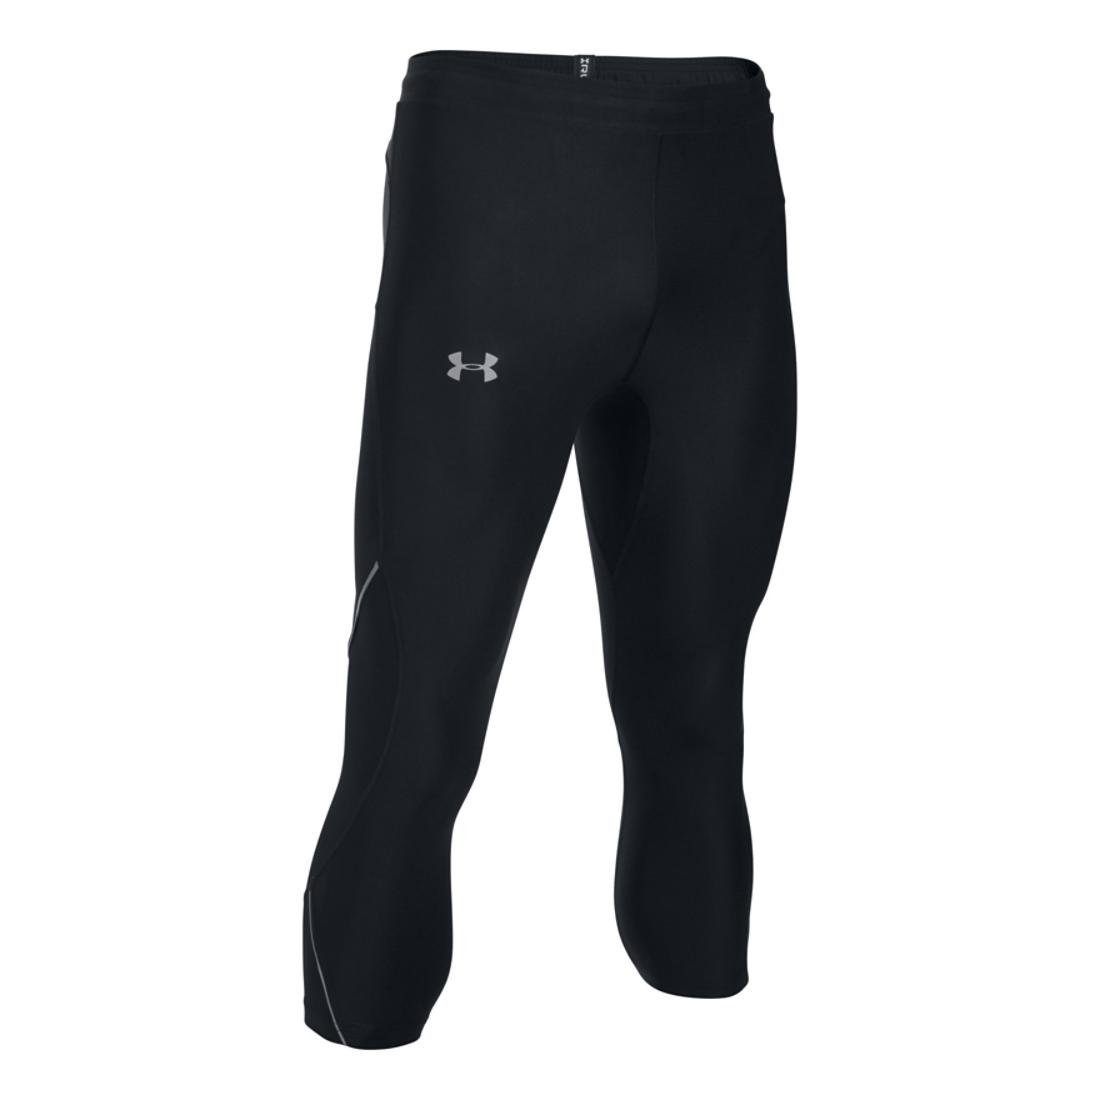 Under Armour Men's Run True ¾ Leggings, Black /Reflective, Large